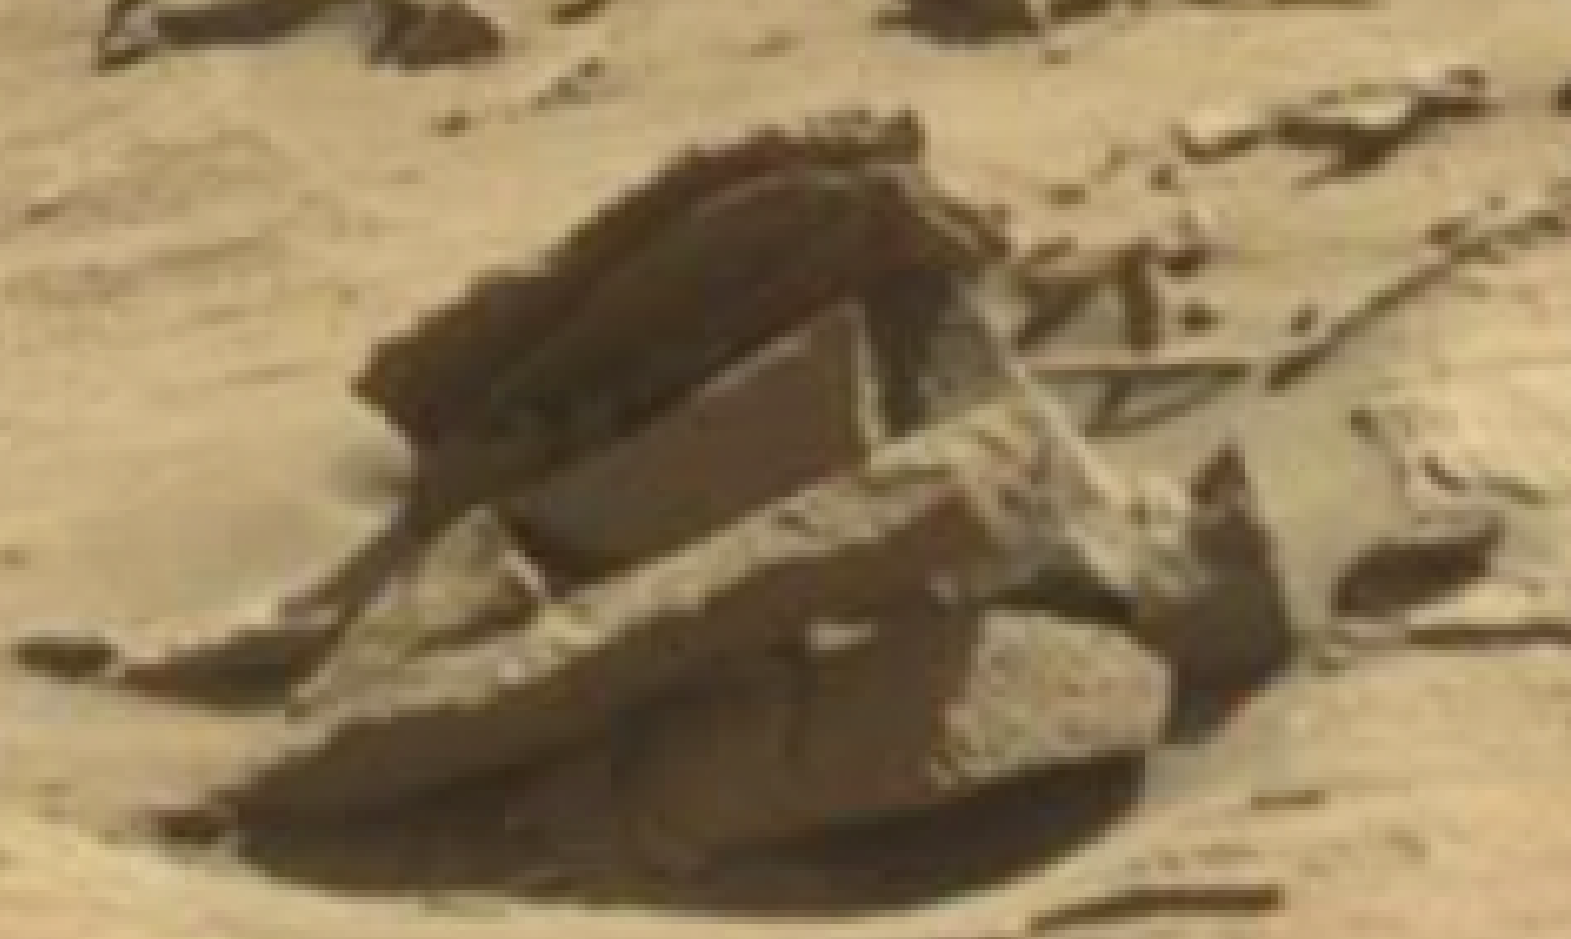 mars sol 1298 anomaly-artifacts 10 was life on mars